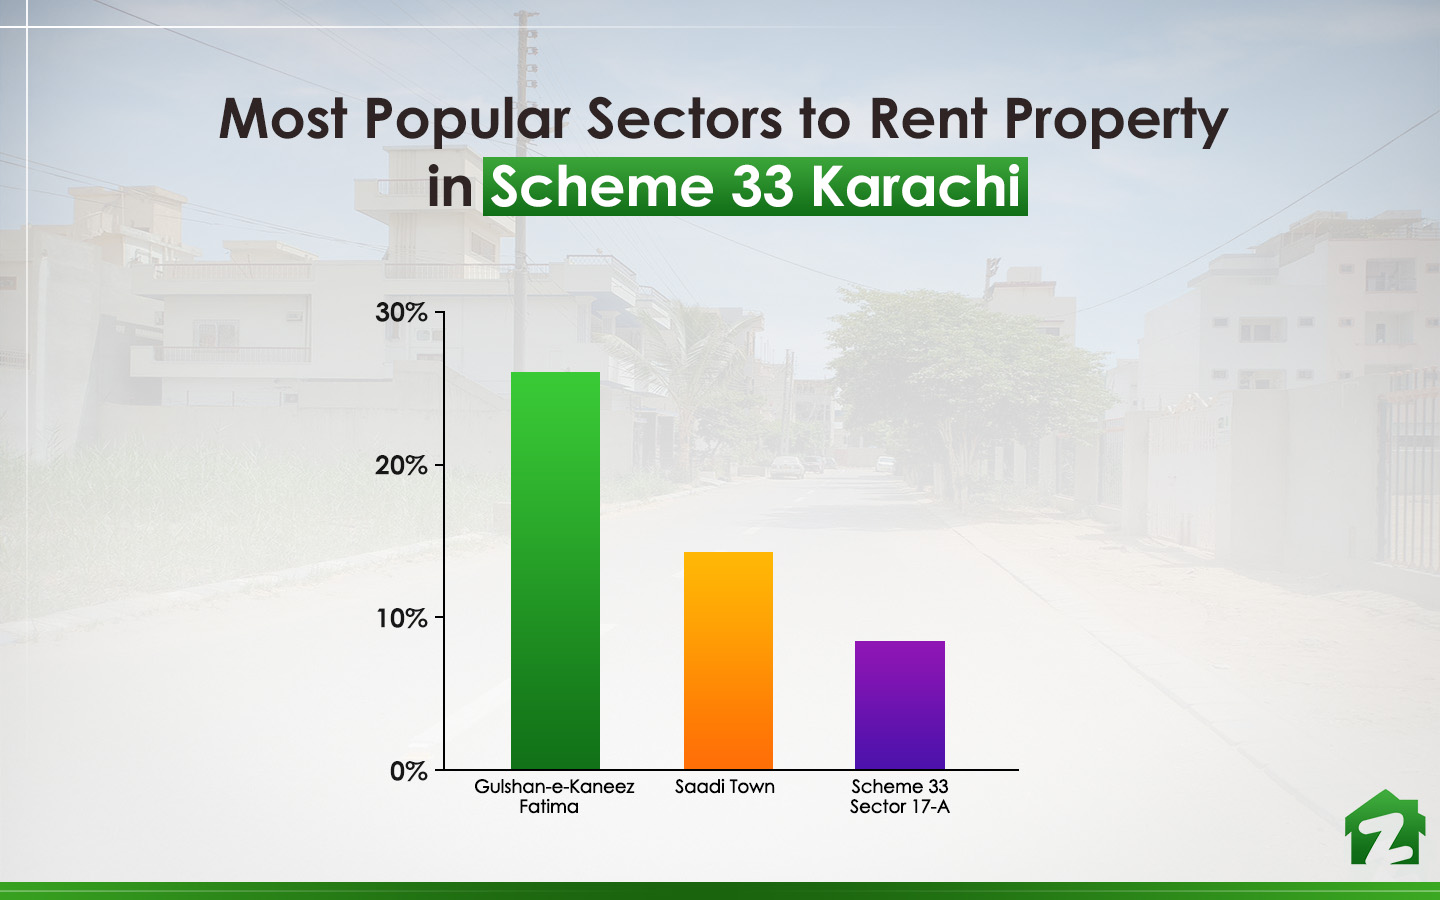 Zameen Statistics for Most Popular Sectors to rent property in Scheme 33 is Sector 17-A